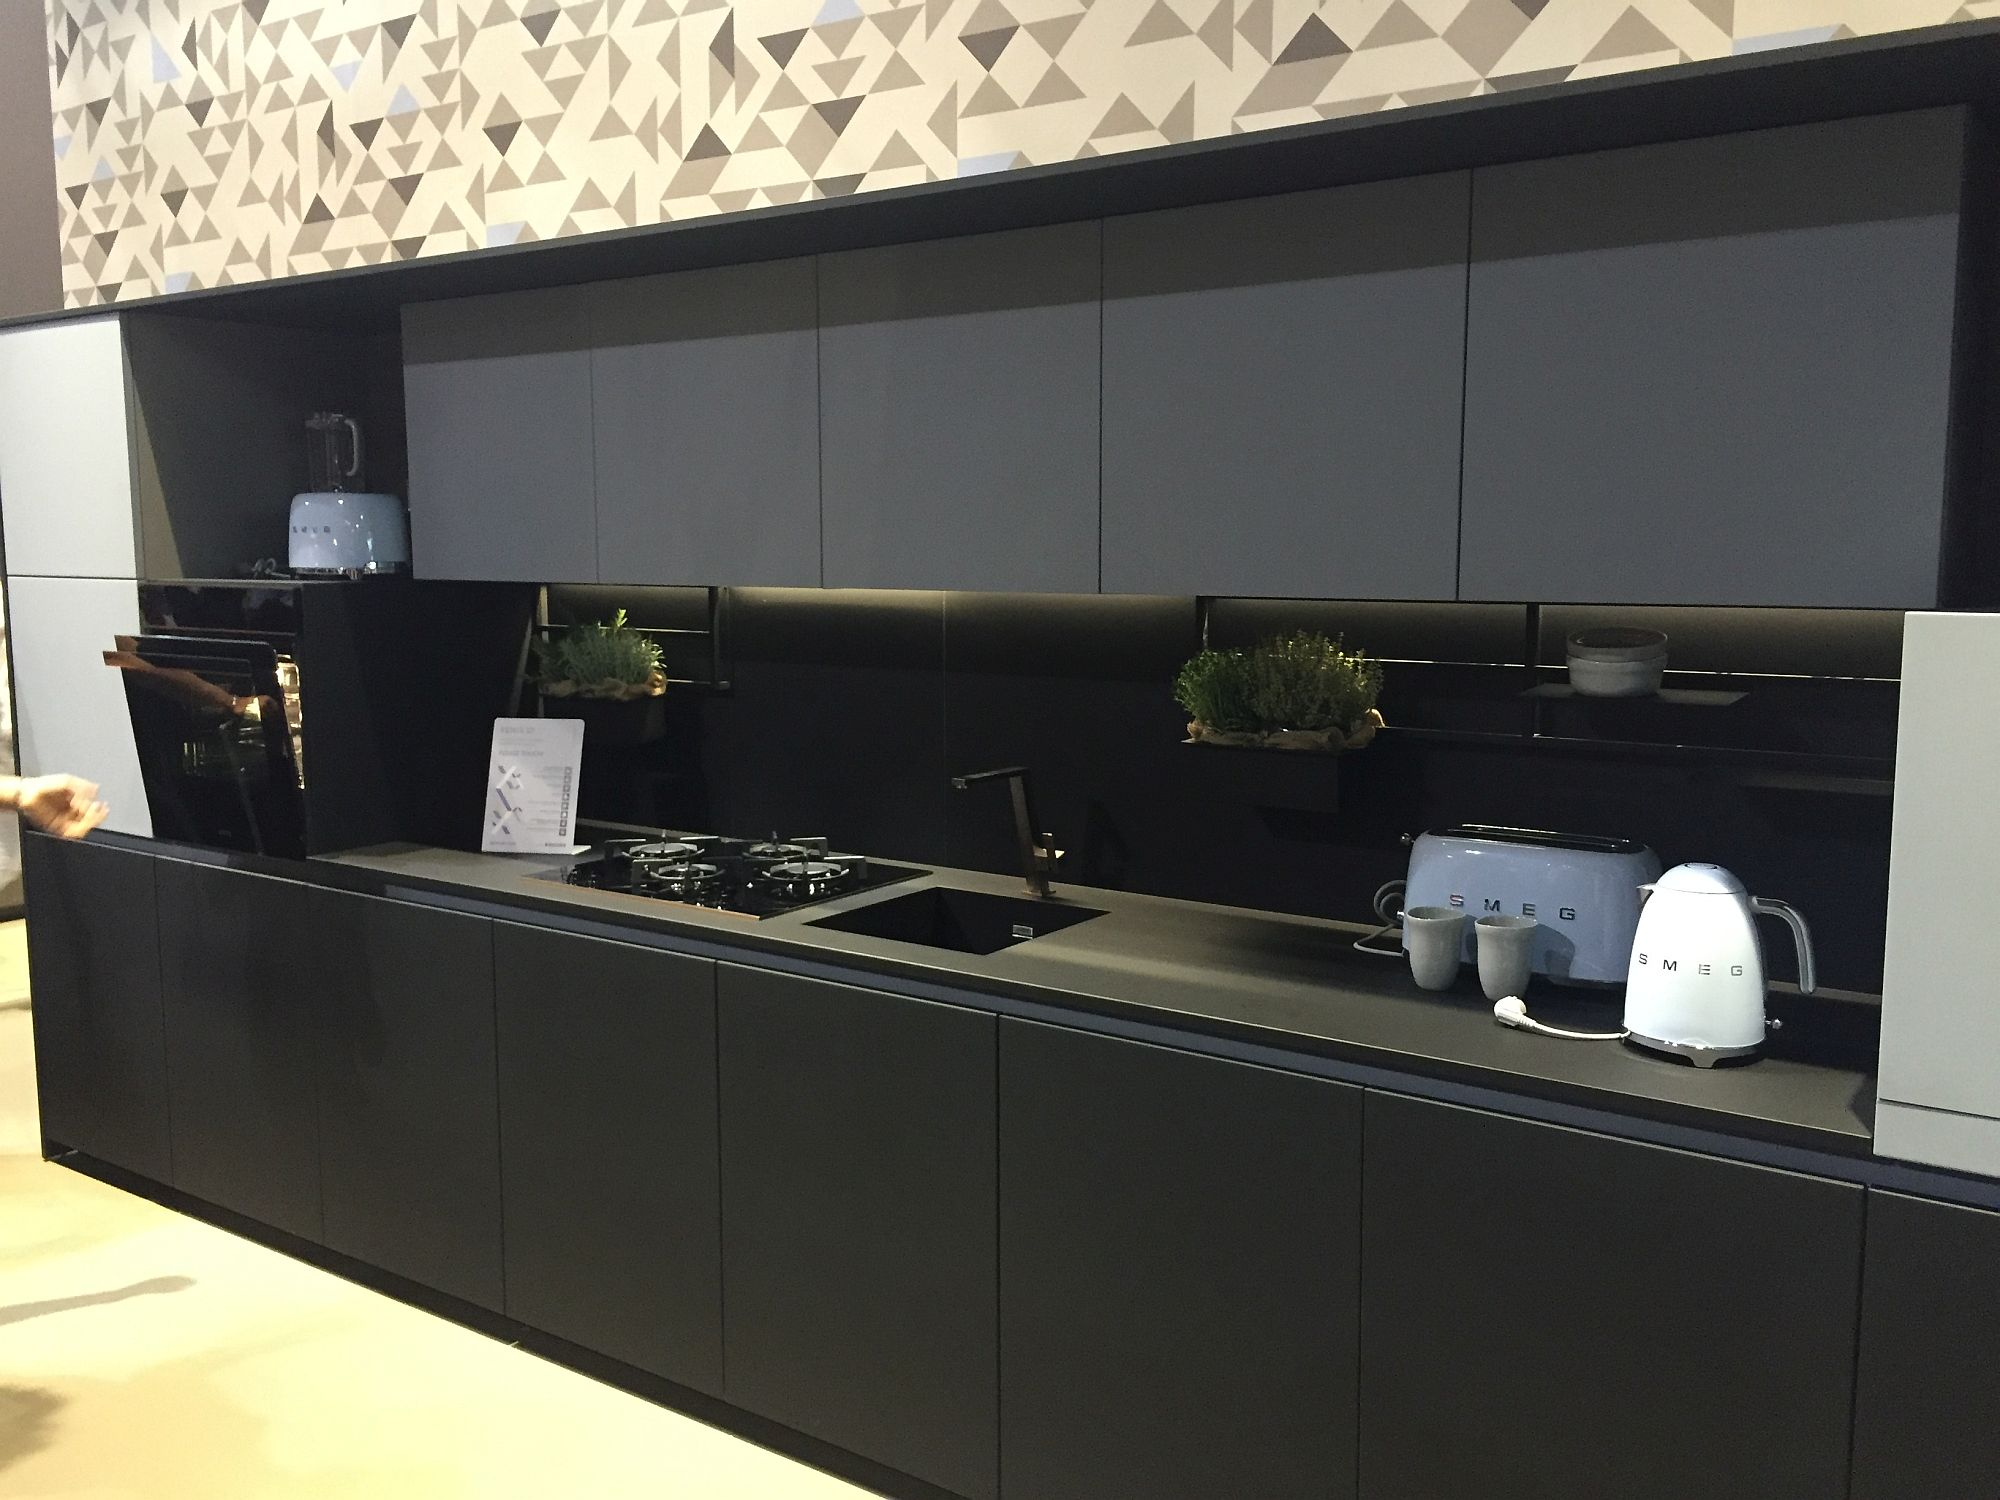 Contemporary one-wall kitchen in black